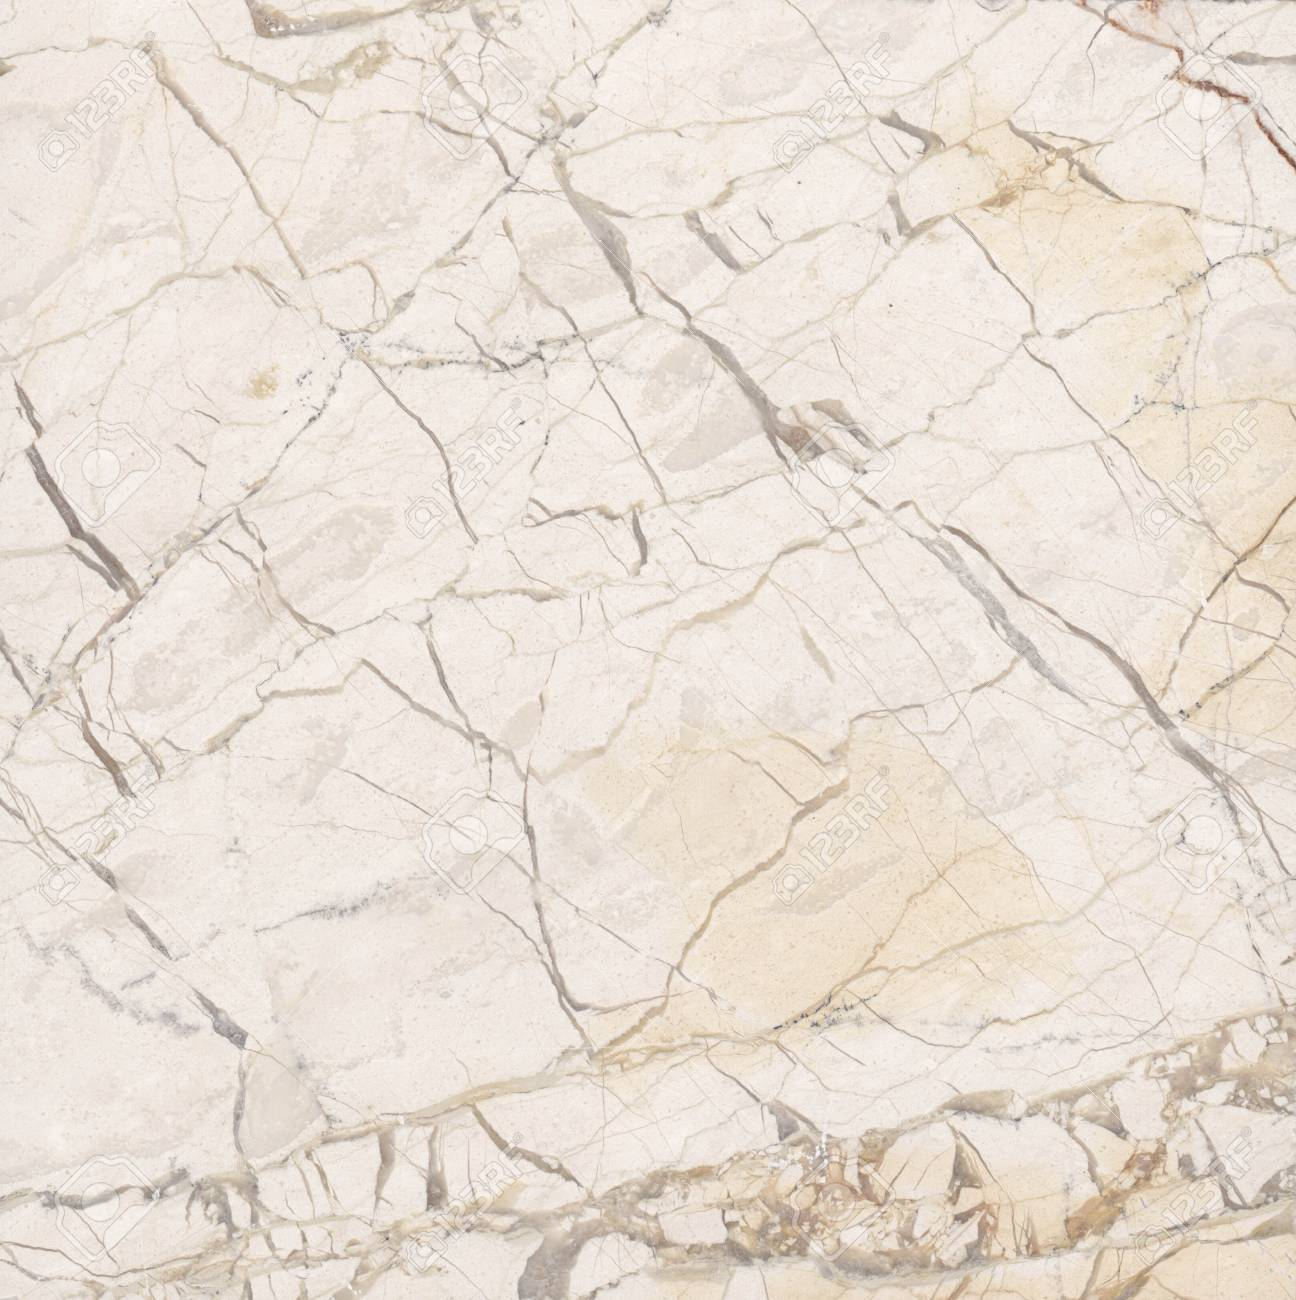 marble texture background  High resolution Stock Photo - 12981012